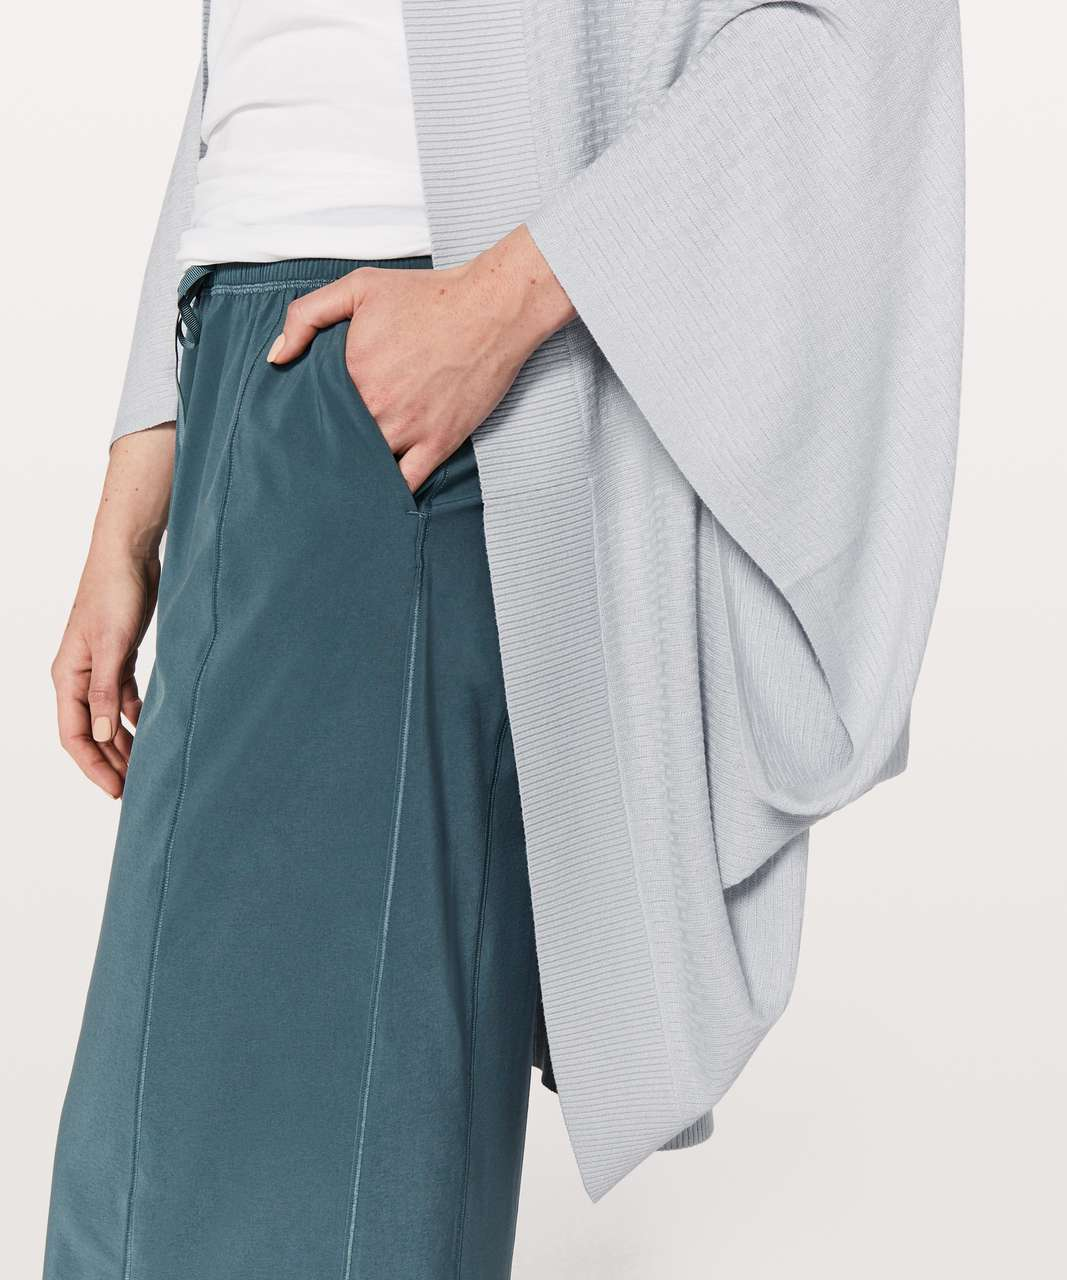 Lululemon Stillness Wrap - Silver Fox / Alpine White